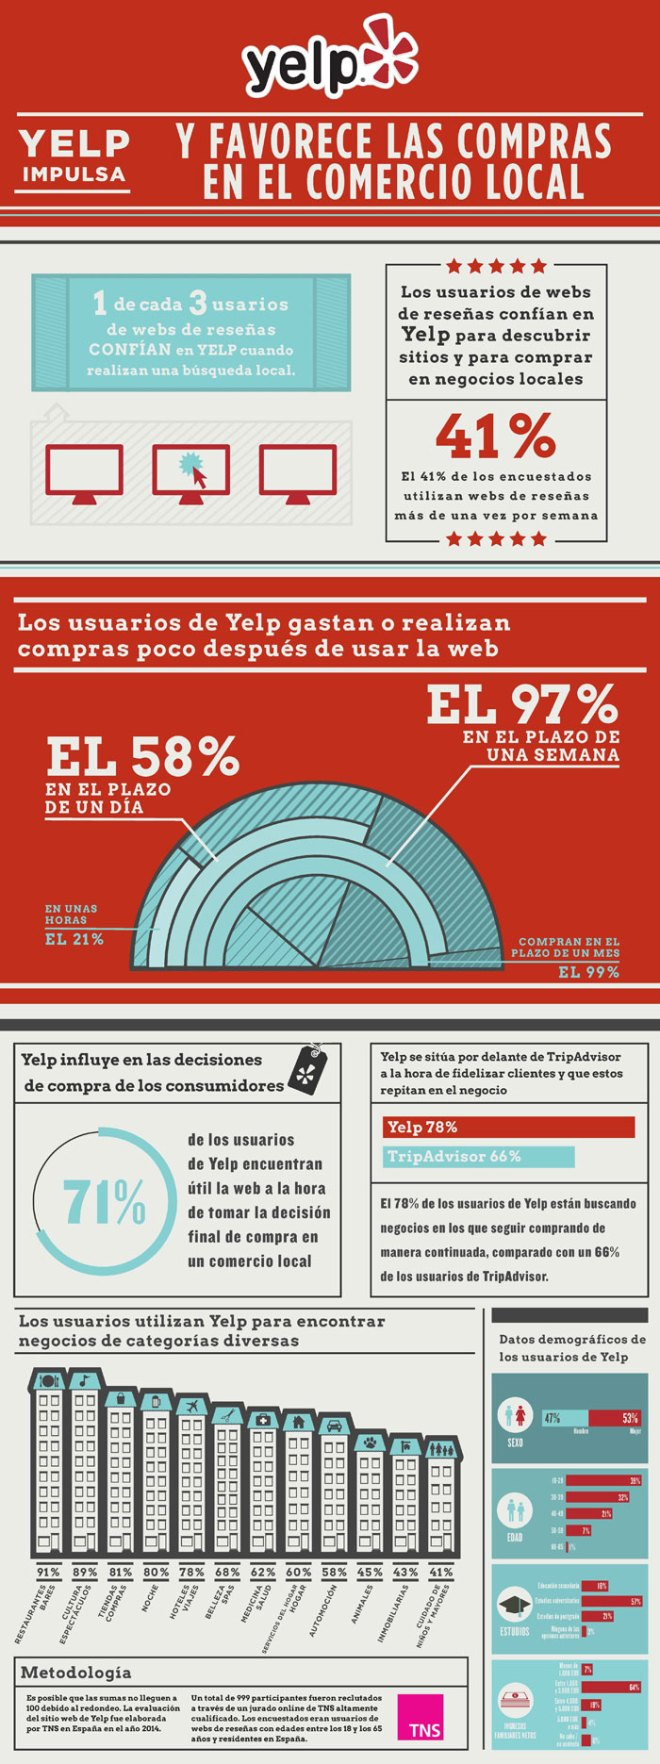 Yelp y el Comercio Local